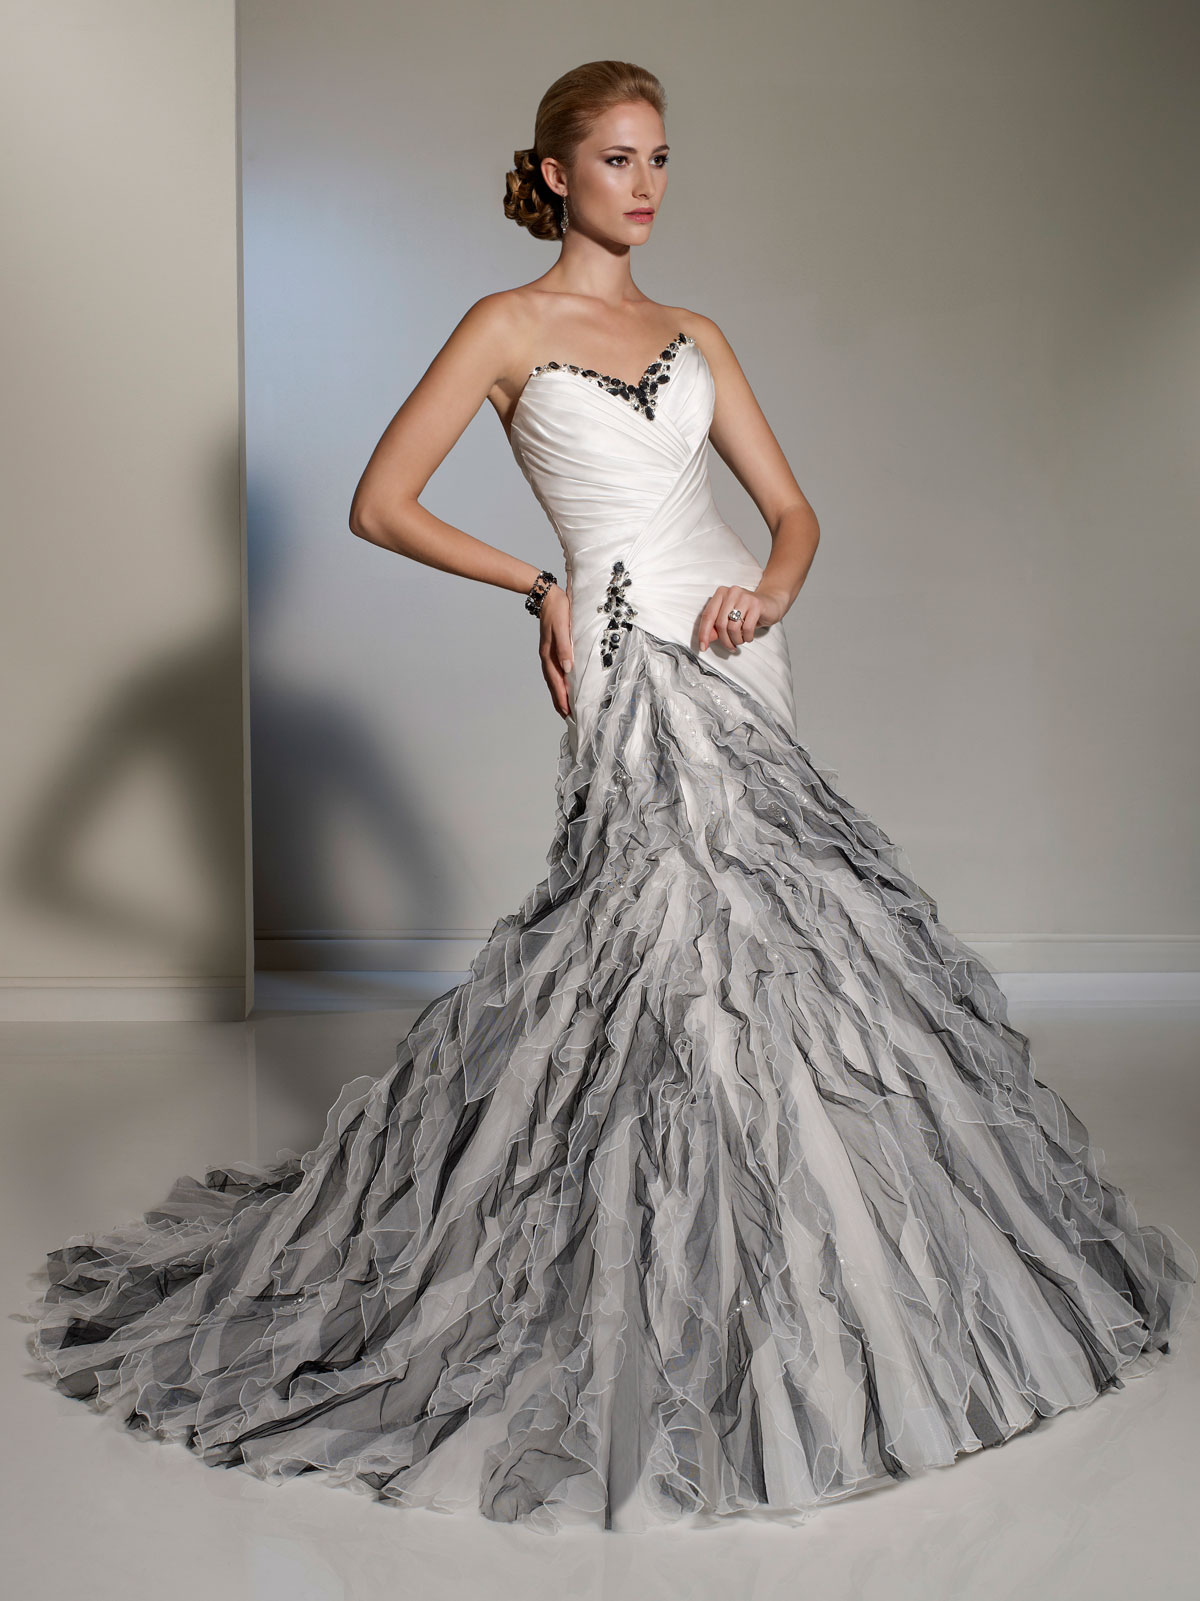 White silver fluted skirt wedding dress for Unique black and white wedding dresses